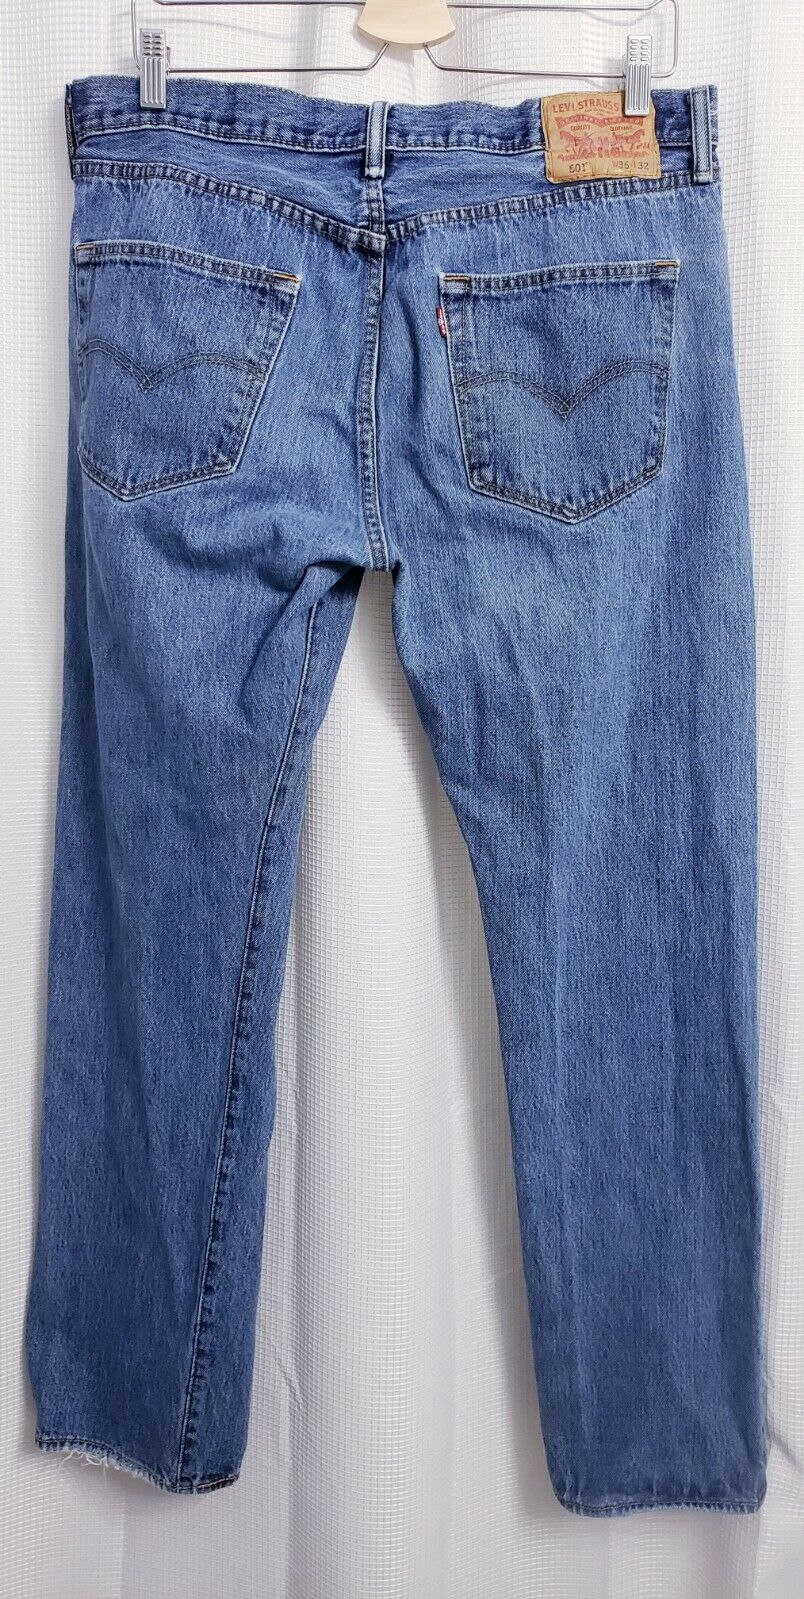 Levis 501 Original Fit Button Fly Distressed Jean… - image 4